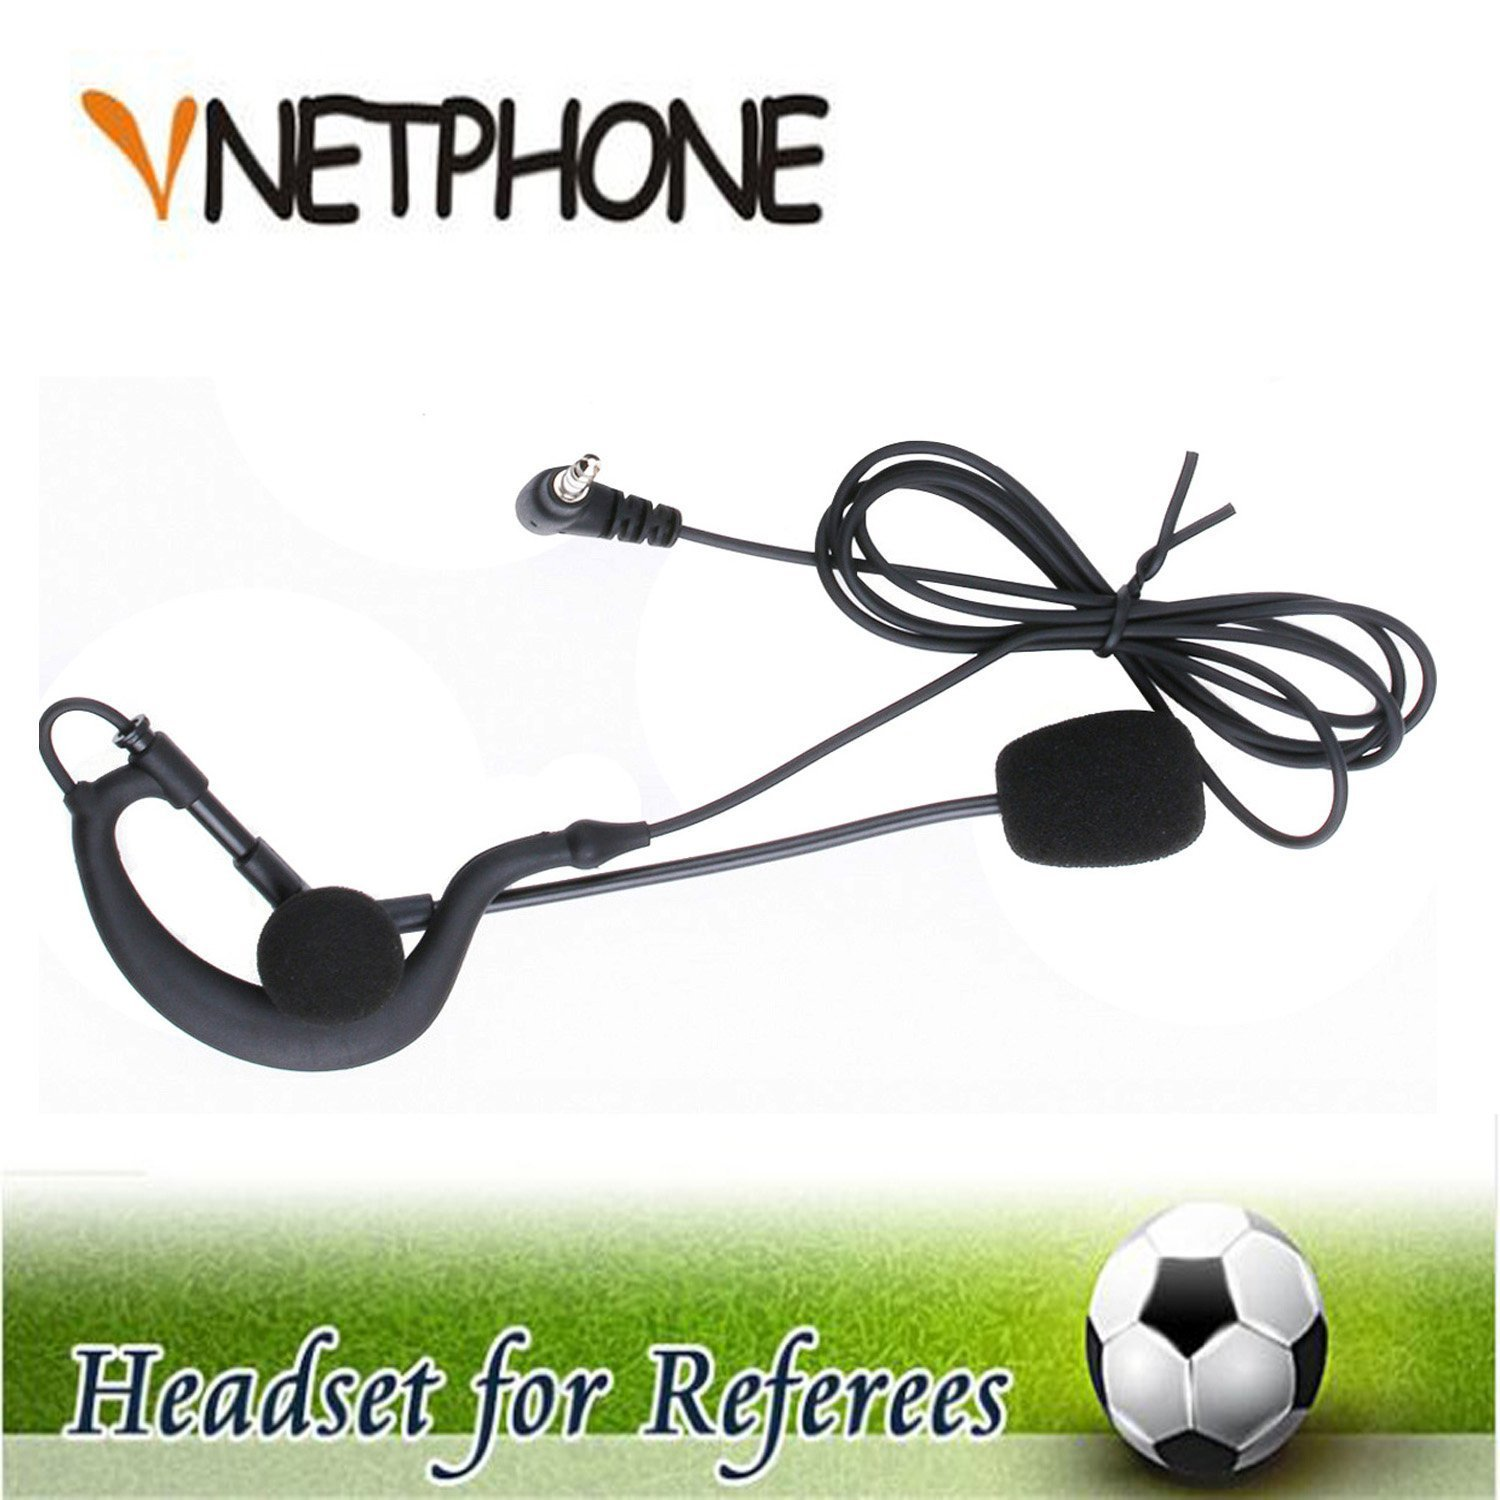 Vnetphone Soccer Football Referee Intercom Microphone Headset High Quality Earphone And Coach Headphones For V6 V4